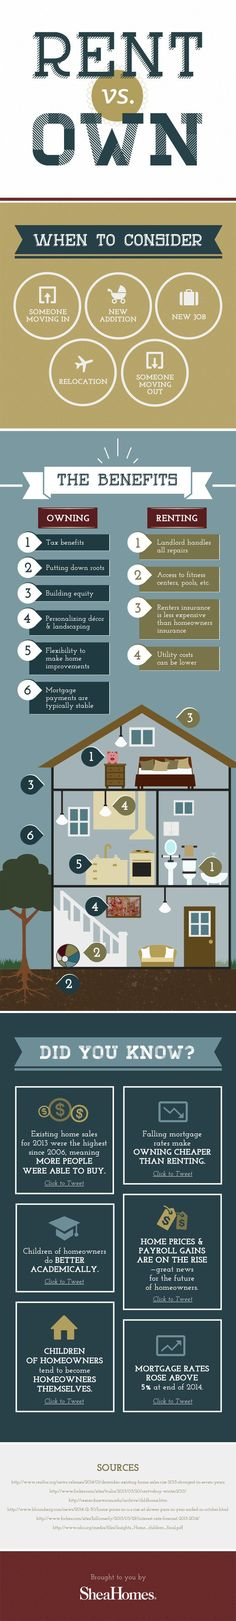 Renting Vs Owning a Home - Some really great tips #ThisGirlSellsHouses #RealEstate